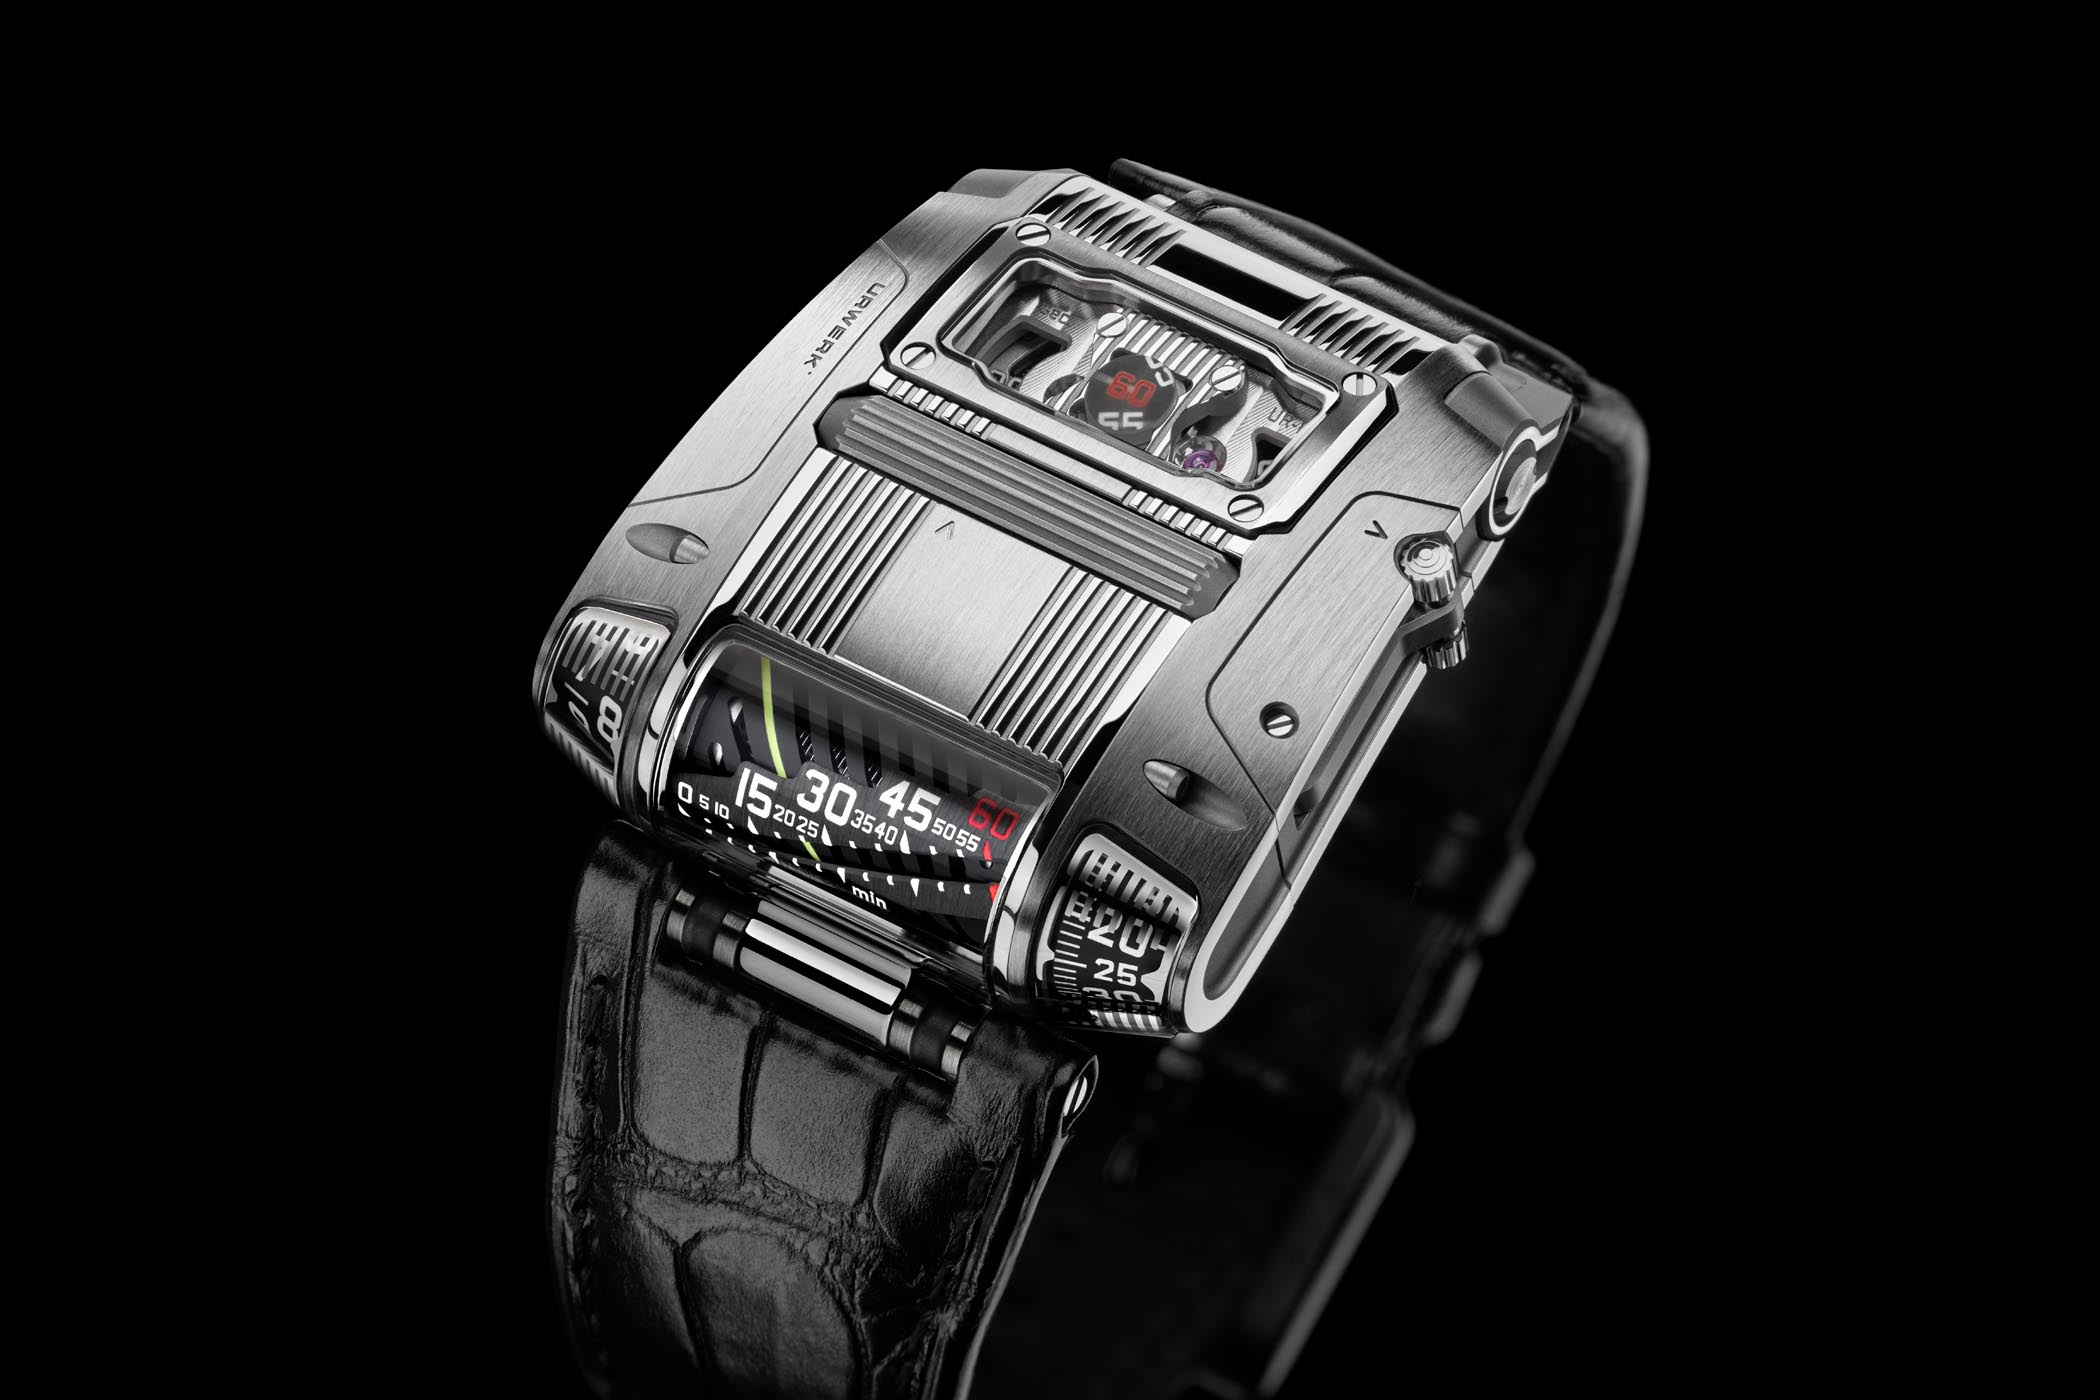 Introducing - URWERK UR-111C with retrograde linear minutes